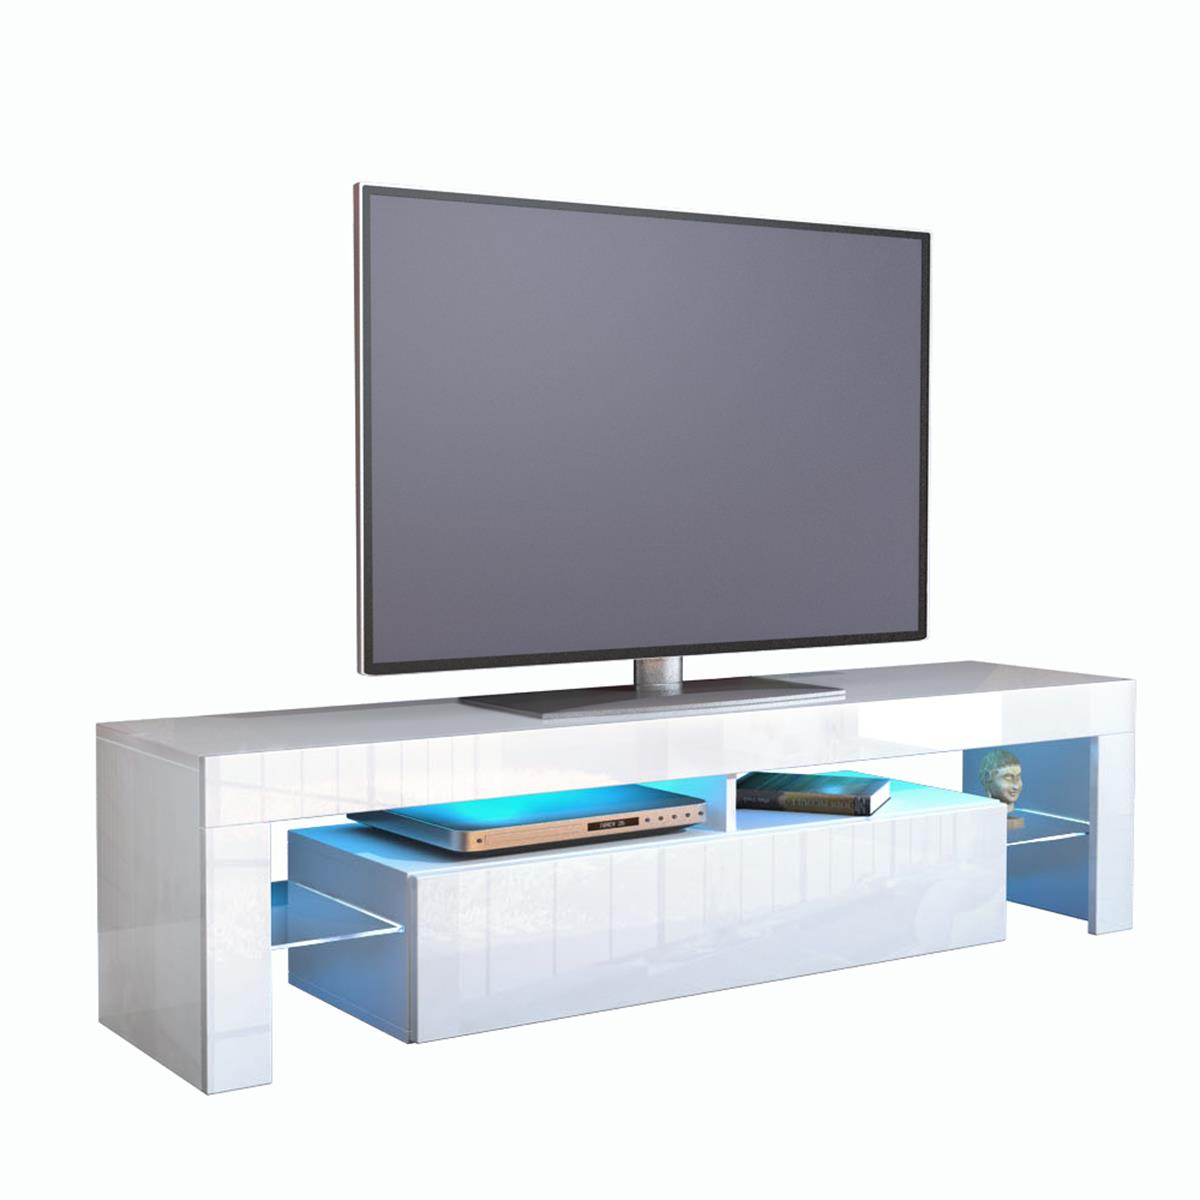 tv board lima in schwebe optik mit beleuchteten glas. Black Bedroom Furniture Sets. Home Design Ideas